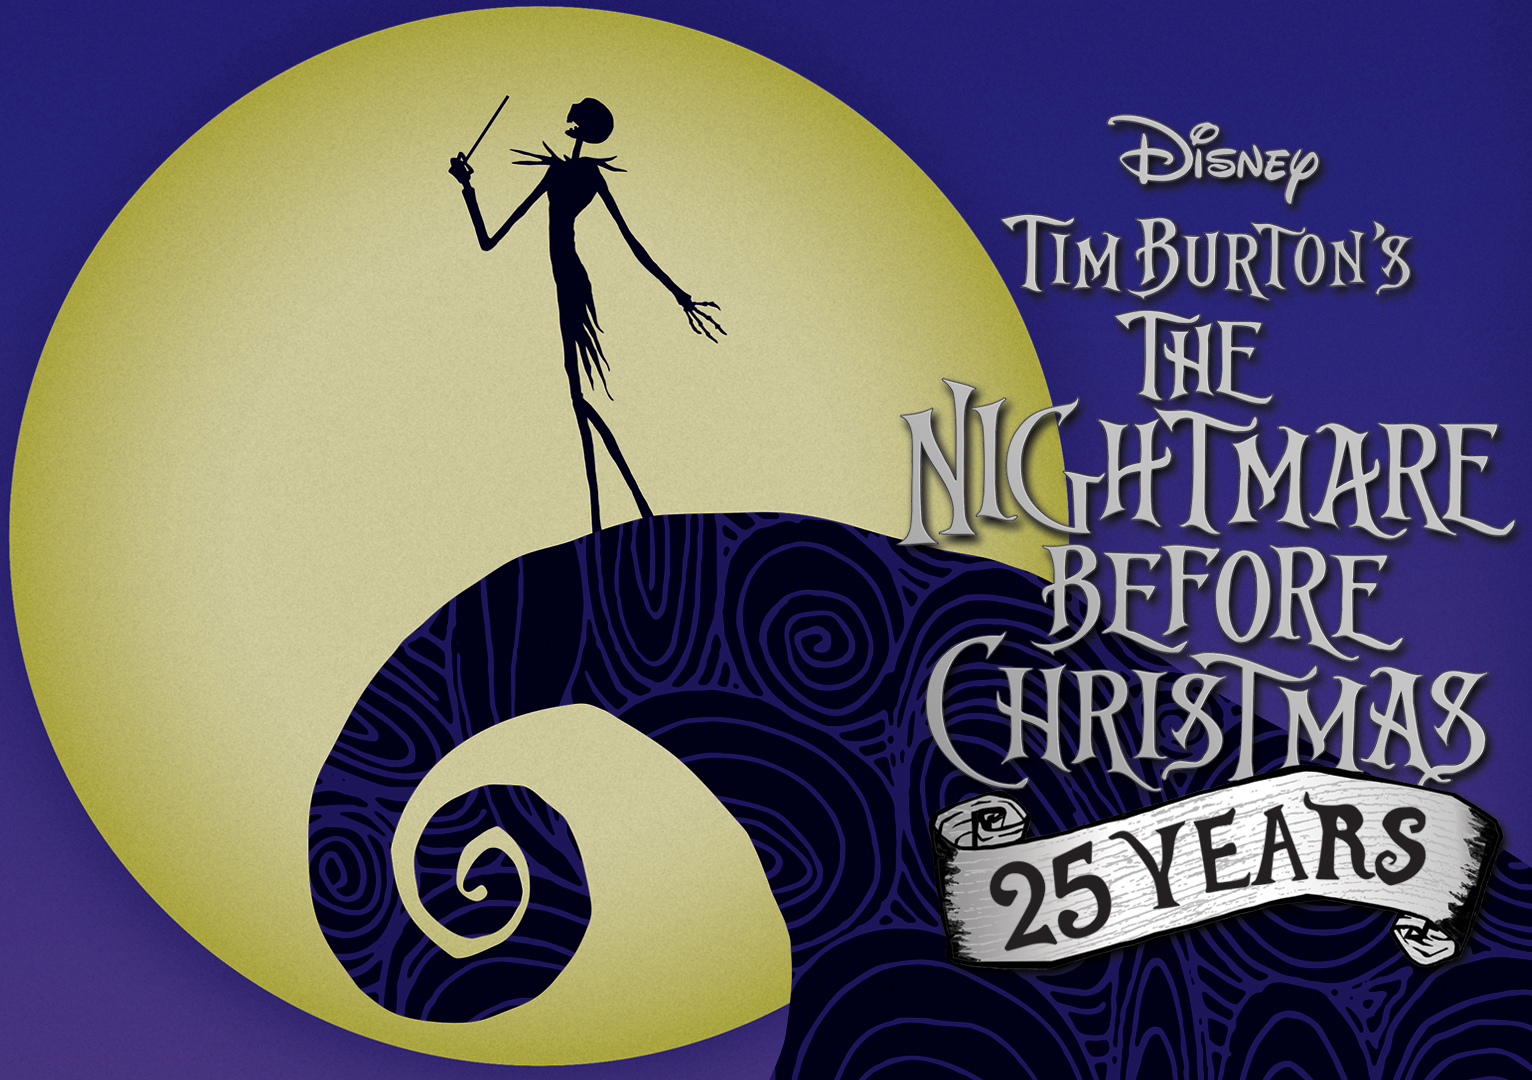 The Nightmare Before Christmas - Starring Danny Elfman, Catherine O'Hara & Ken PageFriday, October 26th & Saturday, October 27th